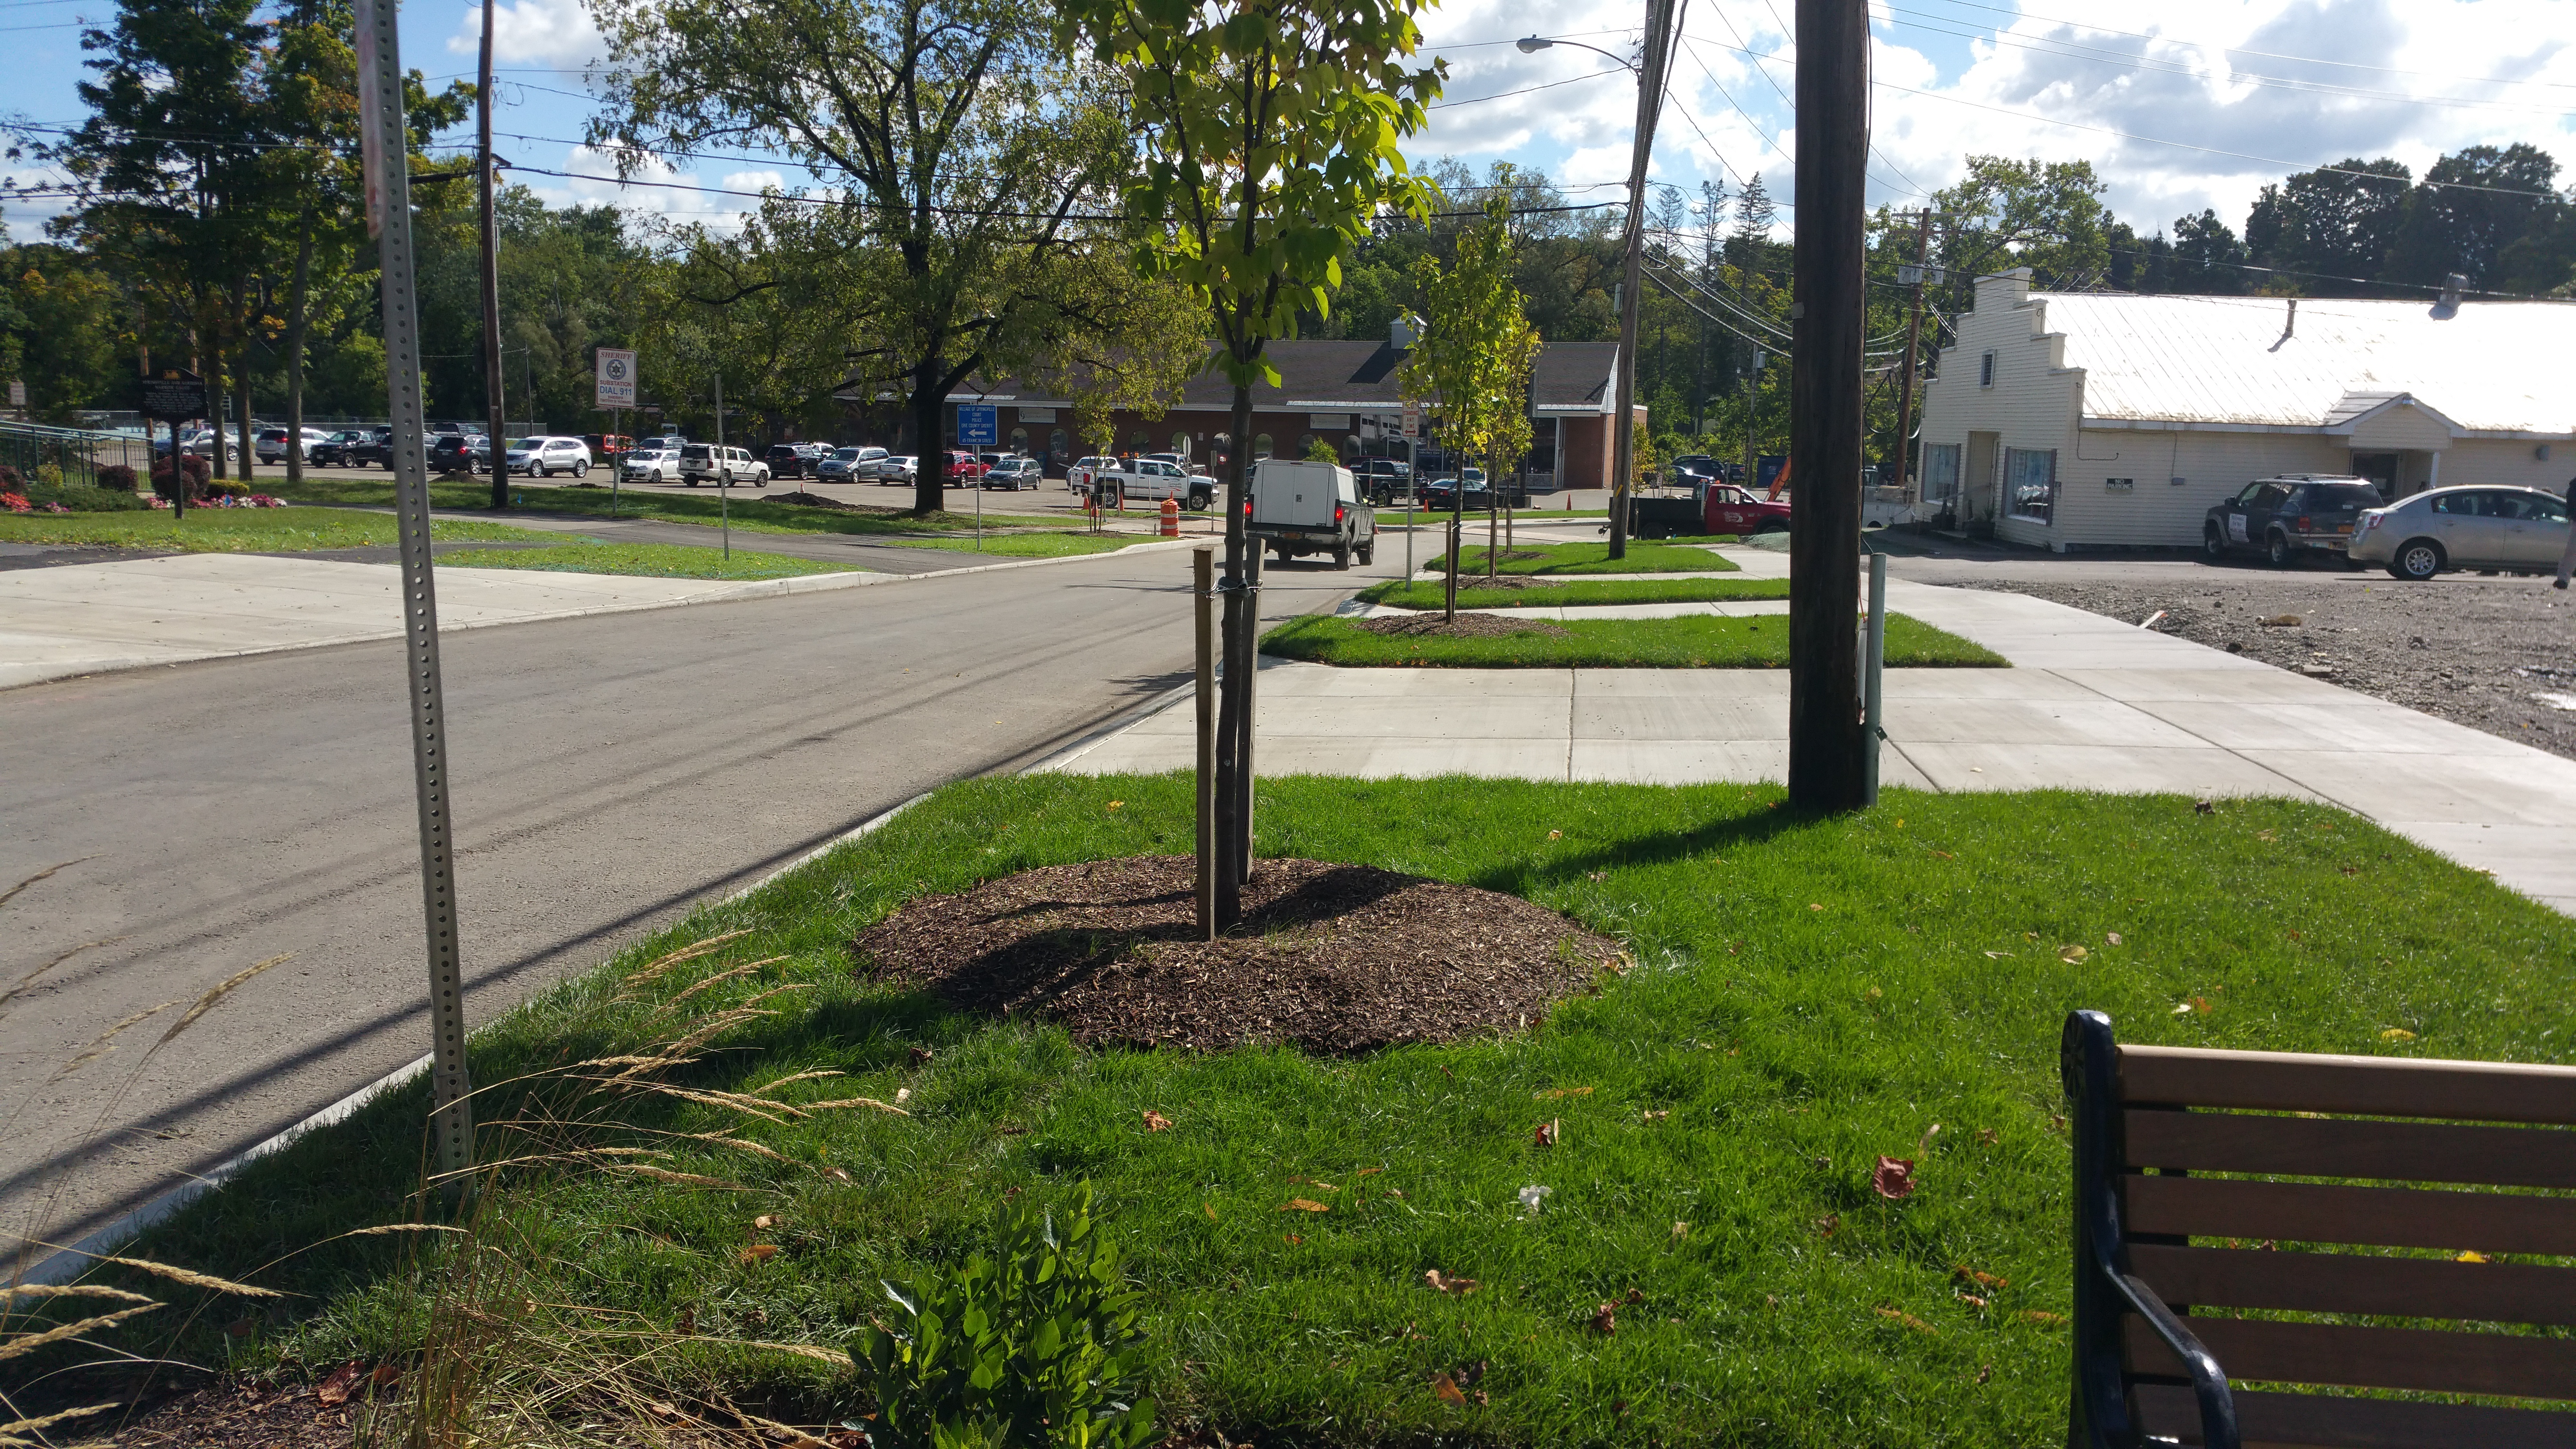 Village of Springville - 2015 - Smart Growth project - Streetscape Amenities